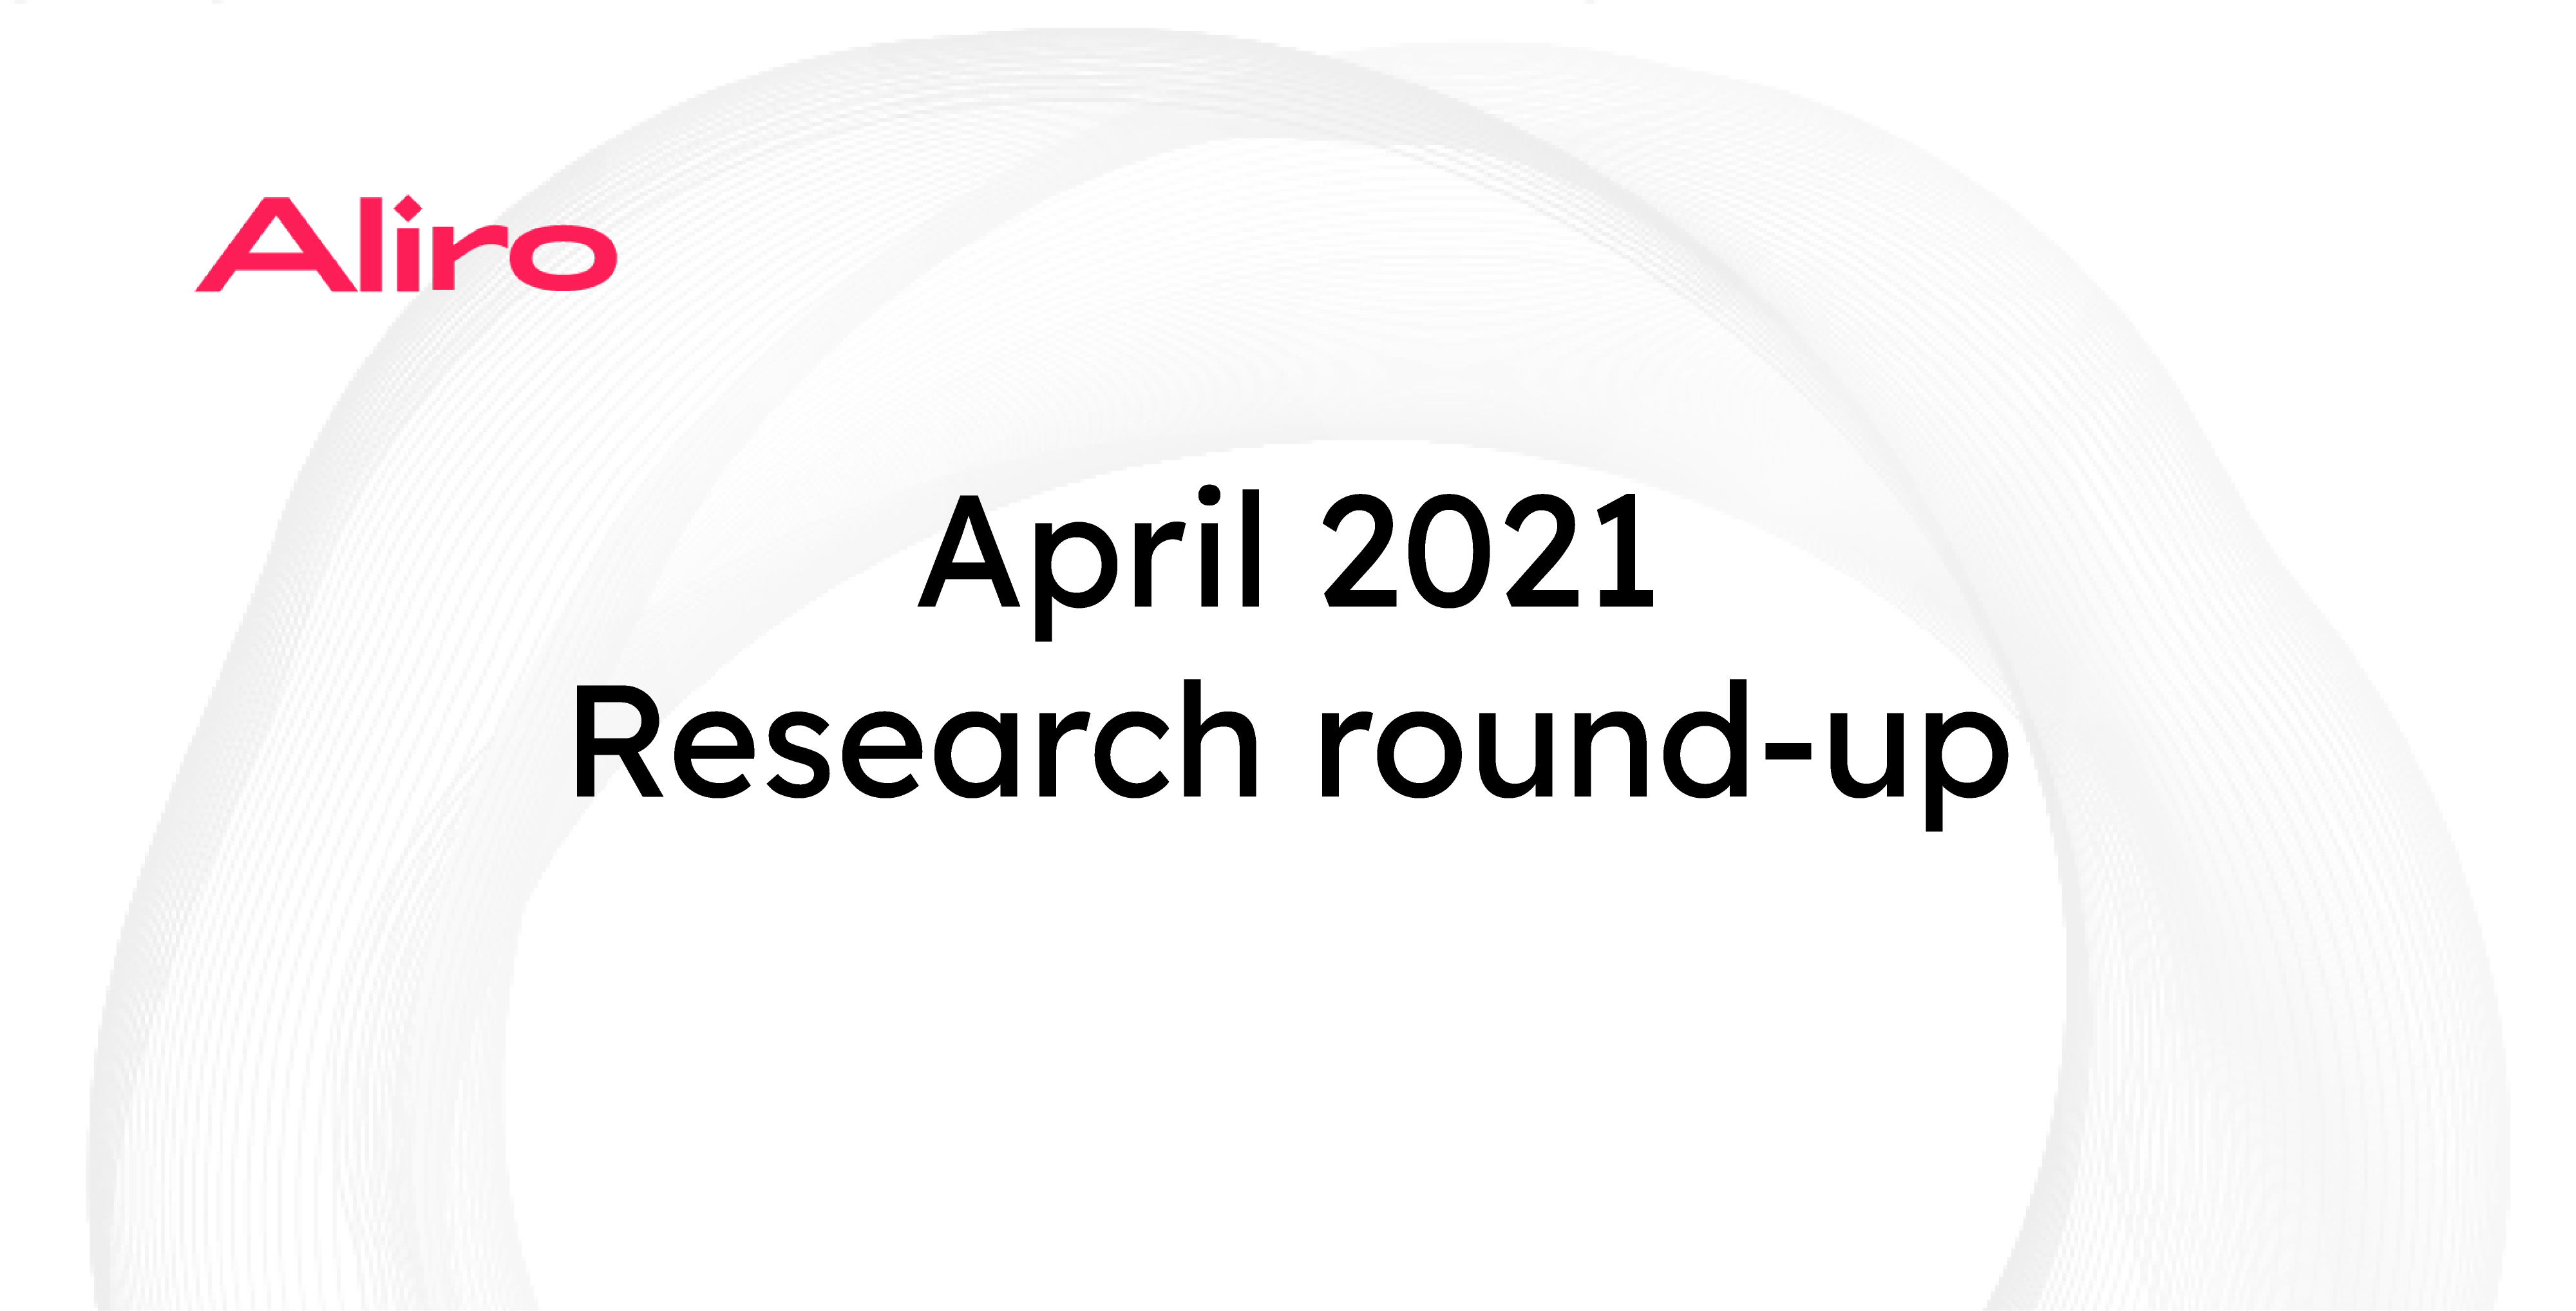 April 2021 research round-up